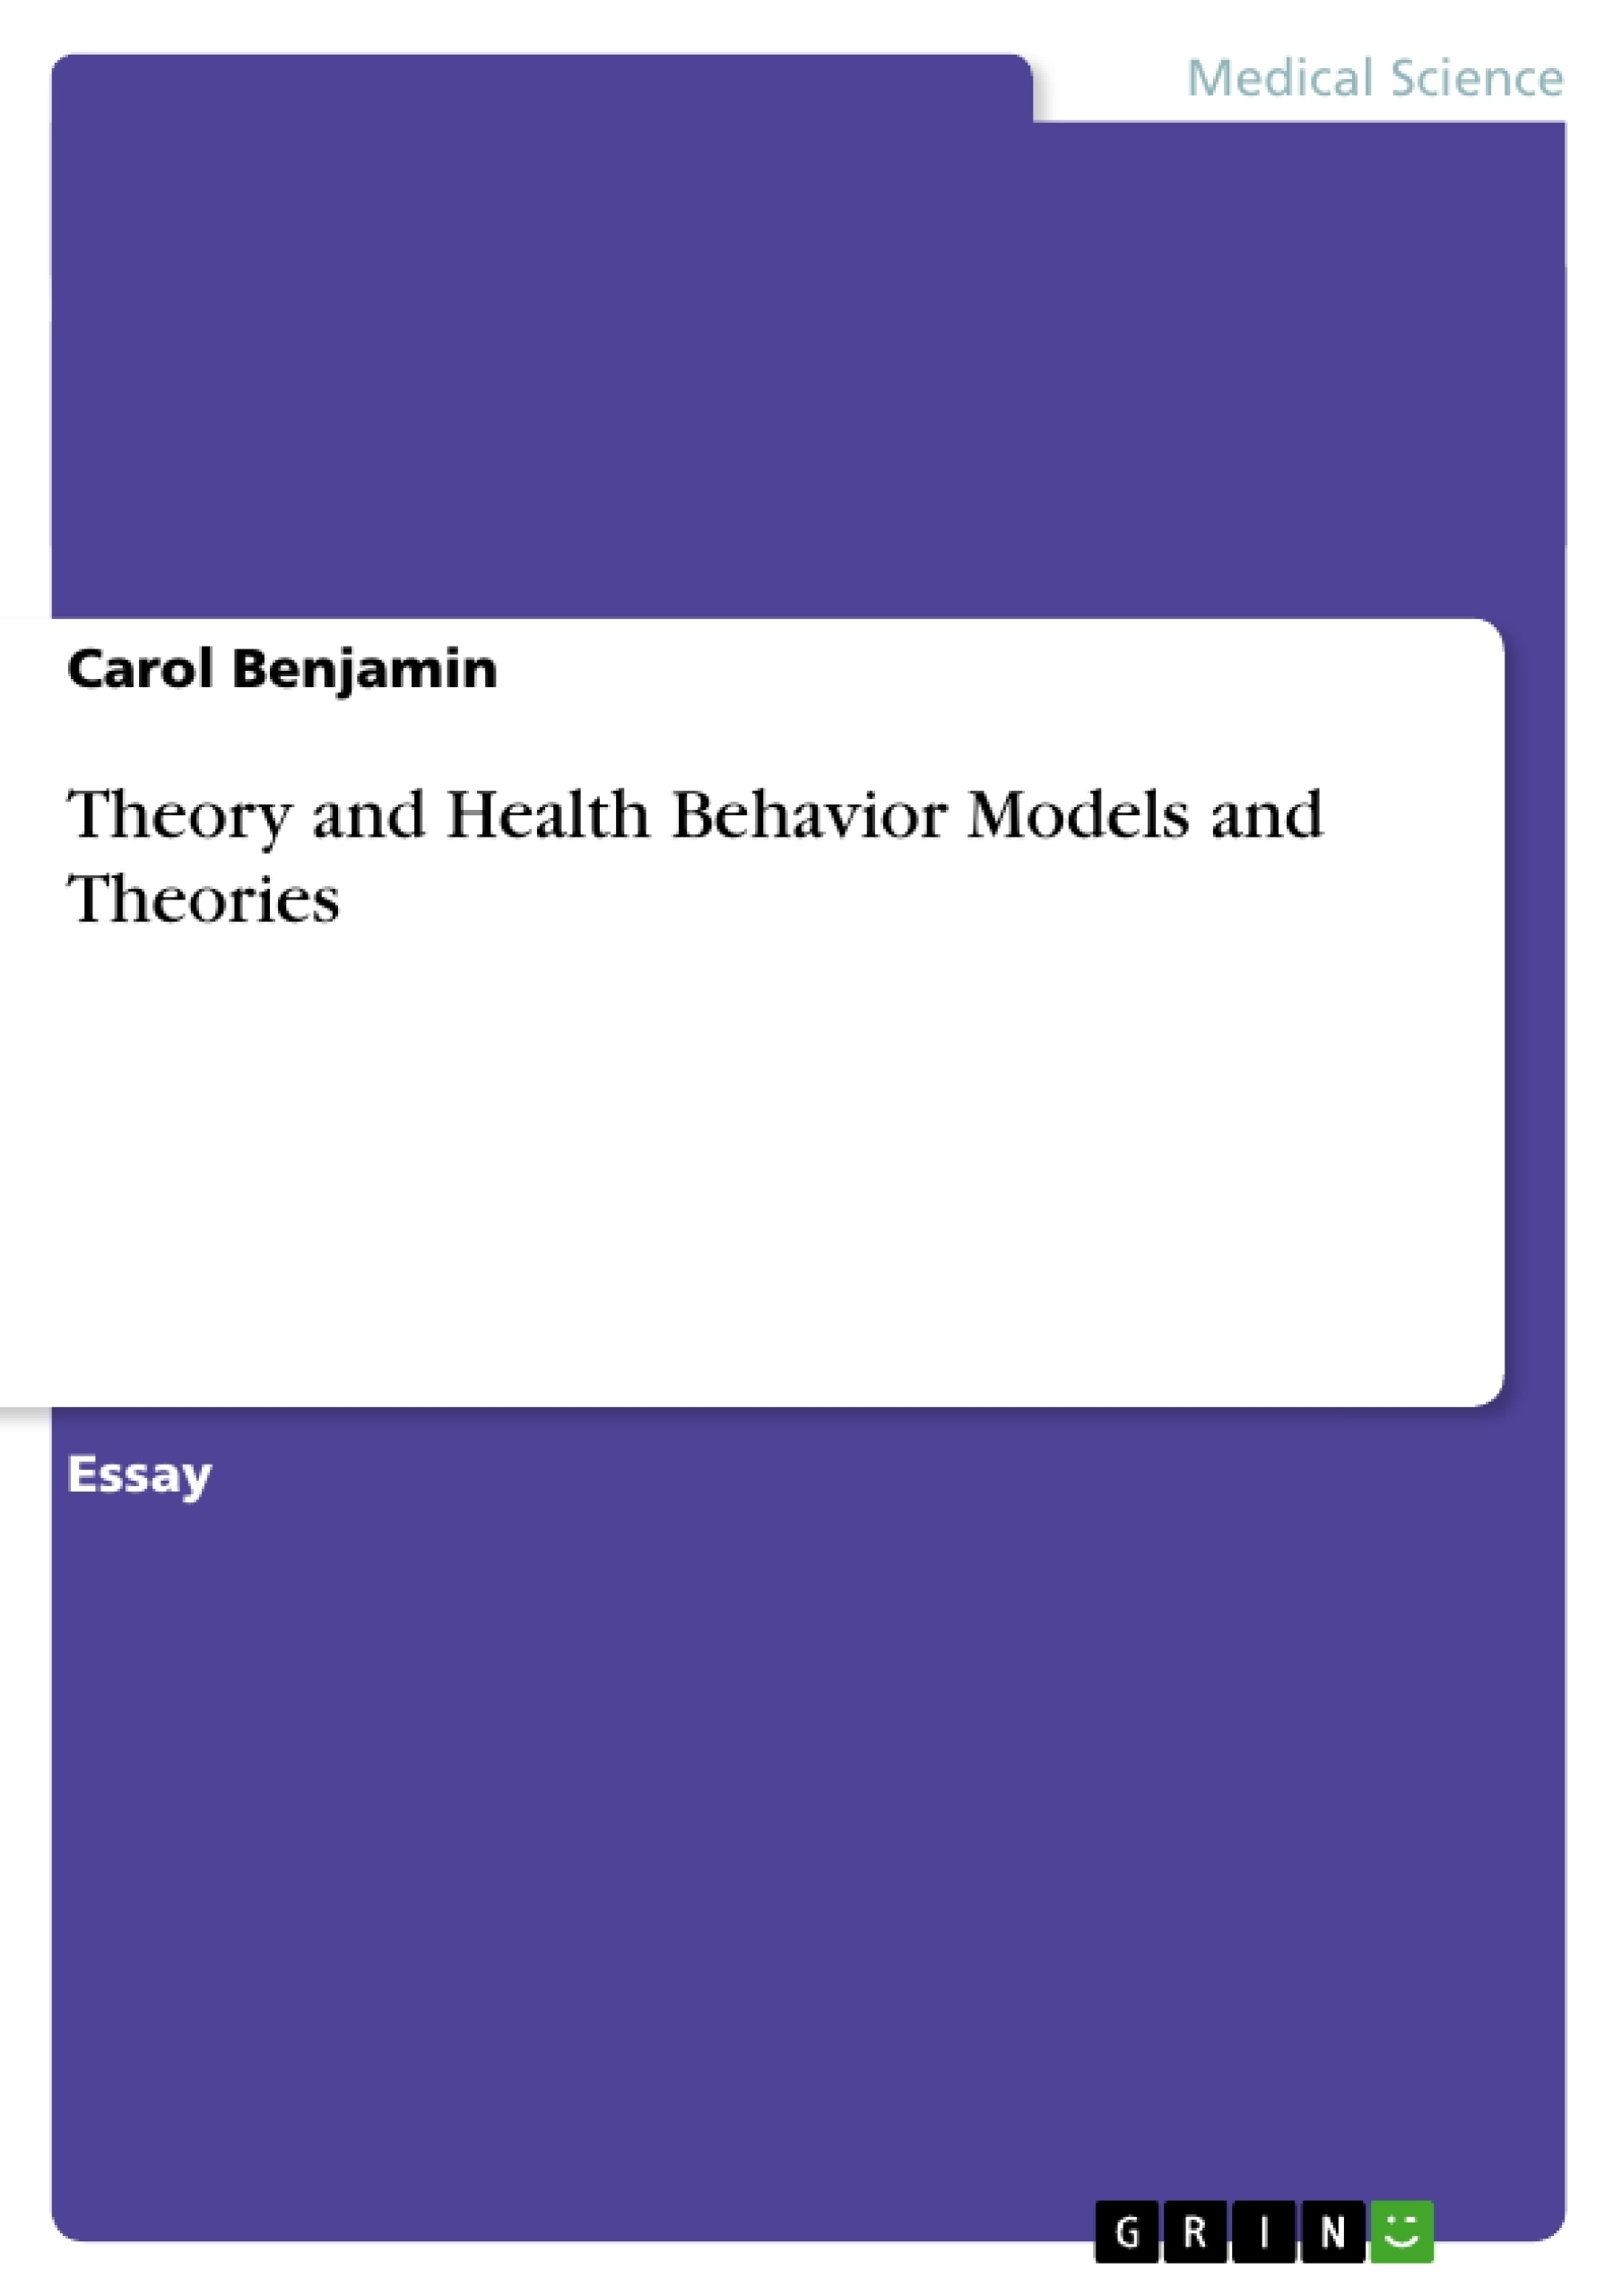 Title: Theory and Health Behavior Models and Theories